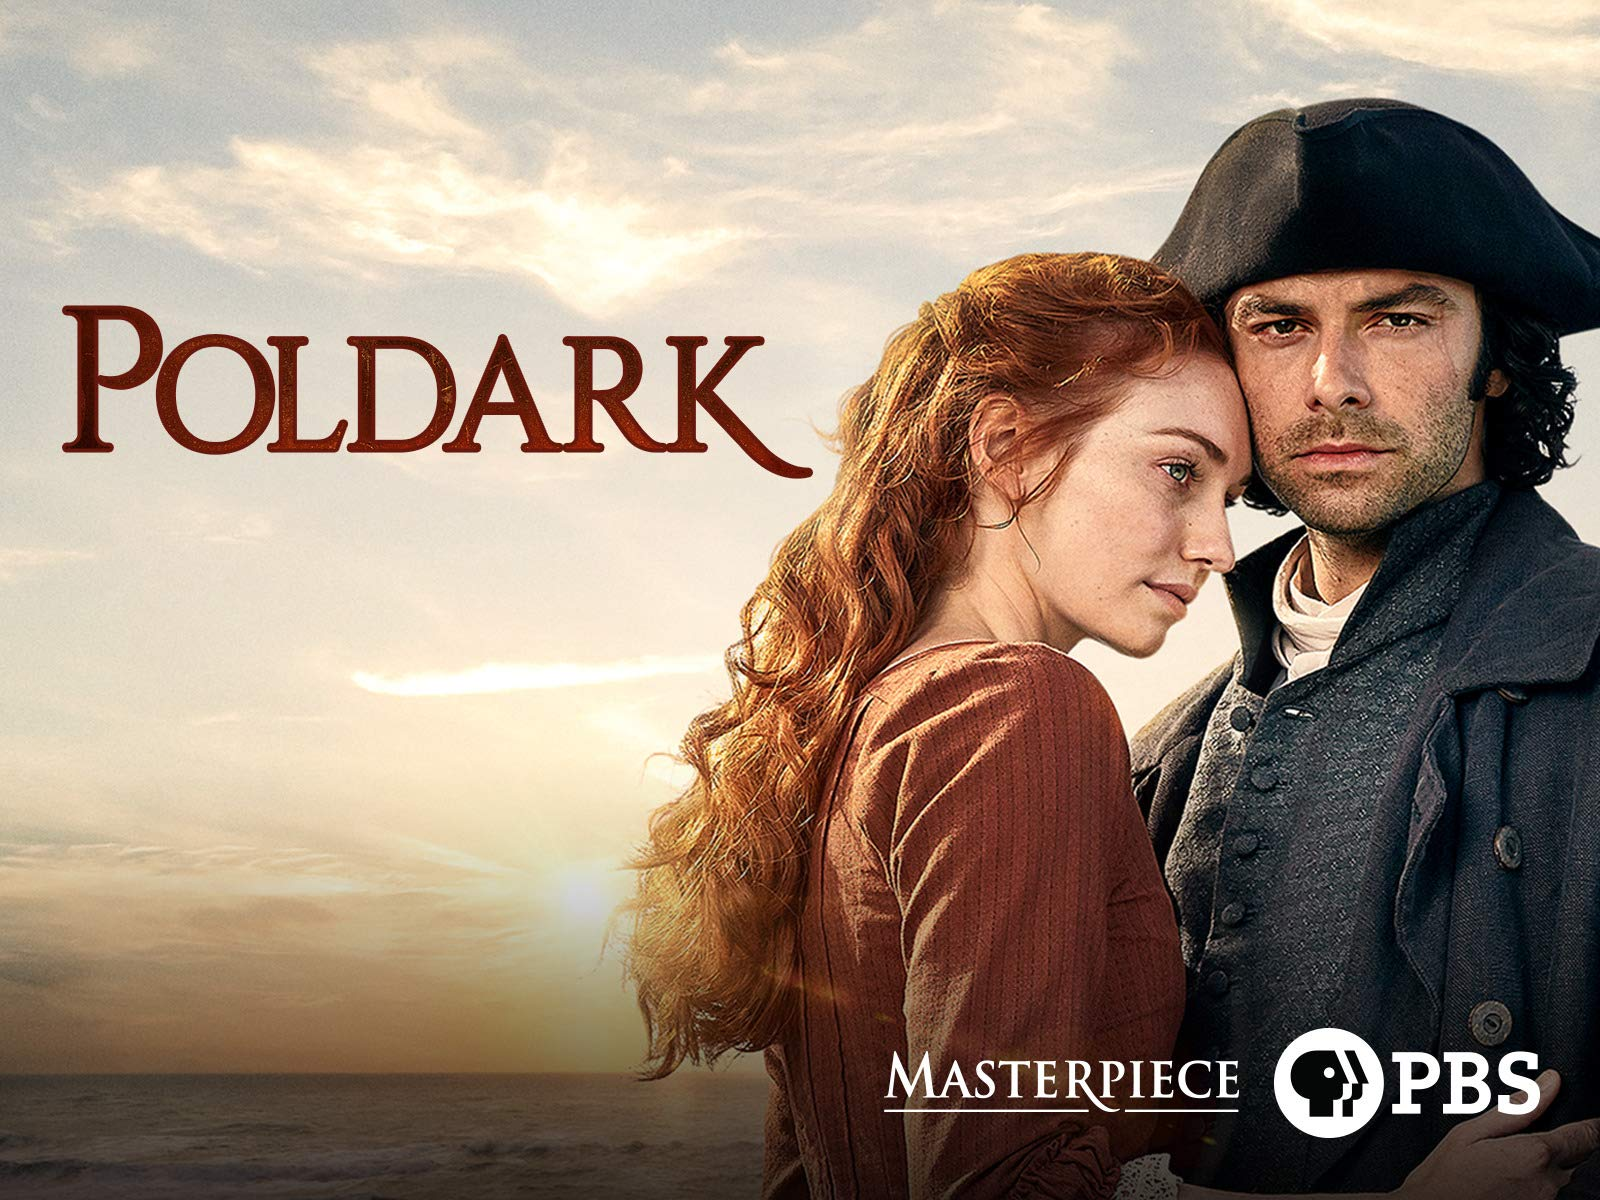 poldark season 3 episode 10 watch online free